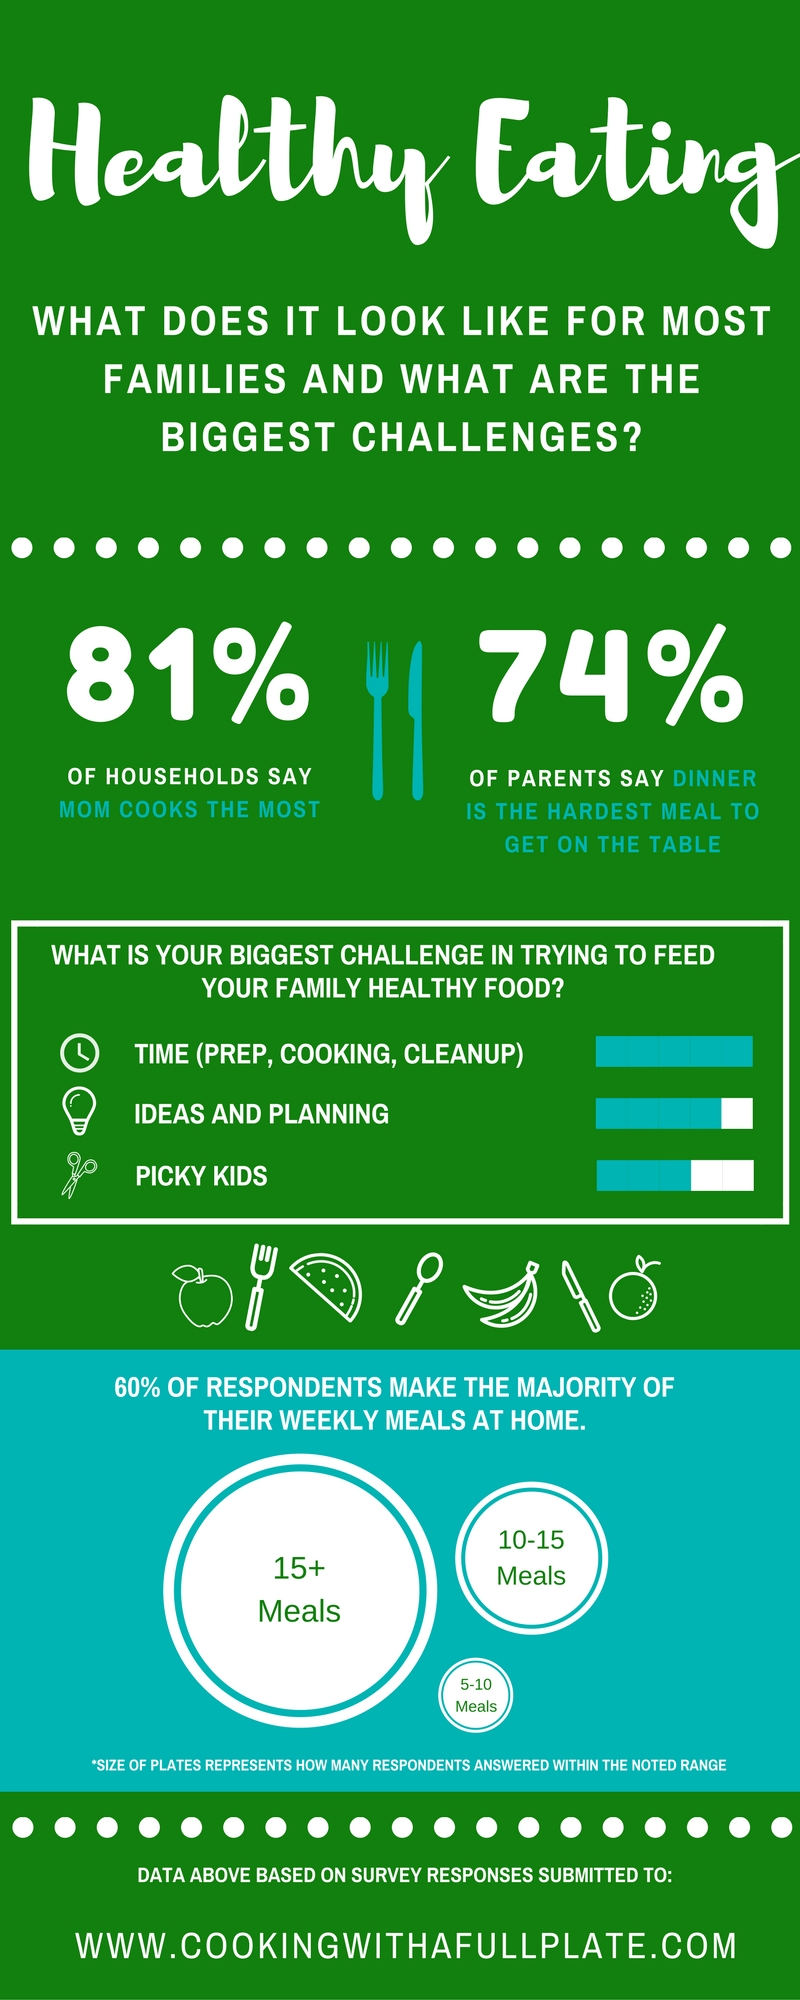 Find out more about what your fellow parents struggle with when it comes to healthy eating at home. You're not along in thinking it's awfully hard to raise kids and cook healthy food. Click through to see how I can help!